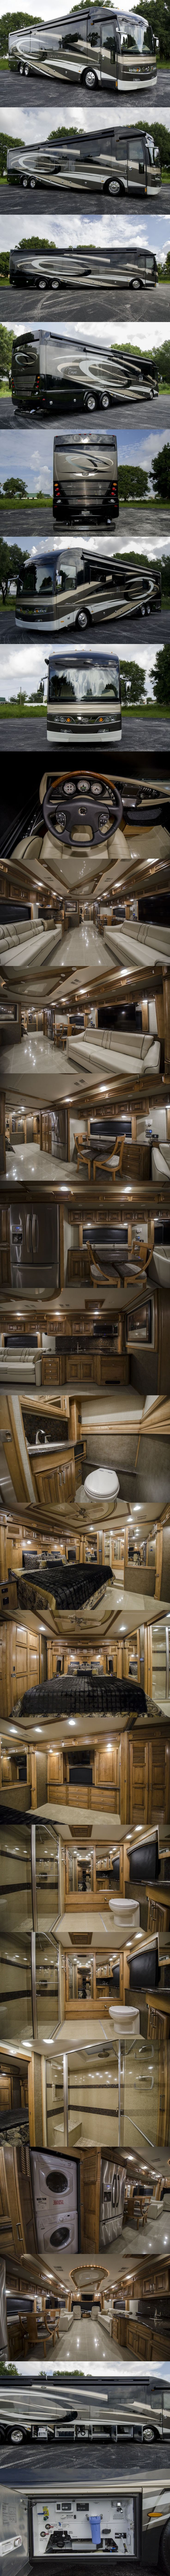 2015 American Coach Eagle 45A Triple Full Wall Slide Bath and a Half 600 Cummins - 1430 Miles$411,111 http://www.themotorcoachstore.com/--2015-American-Eagle-45A